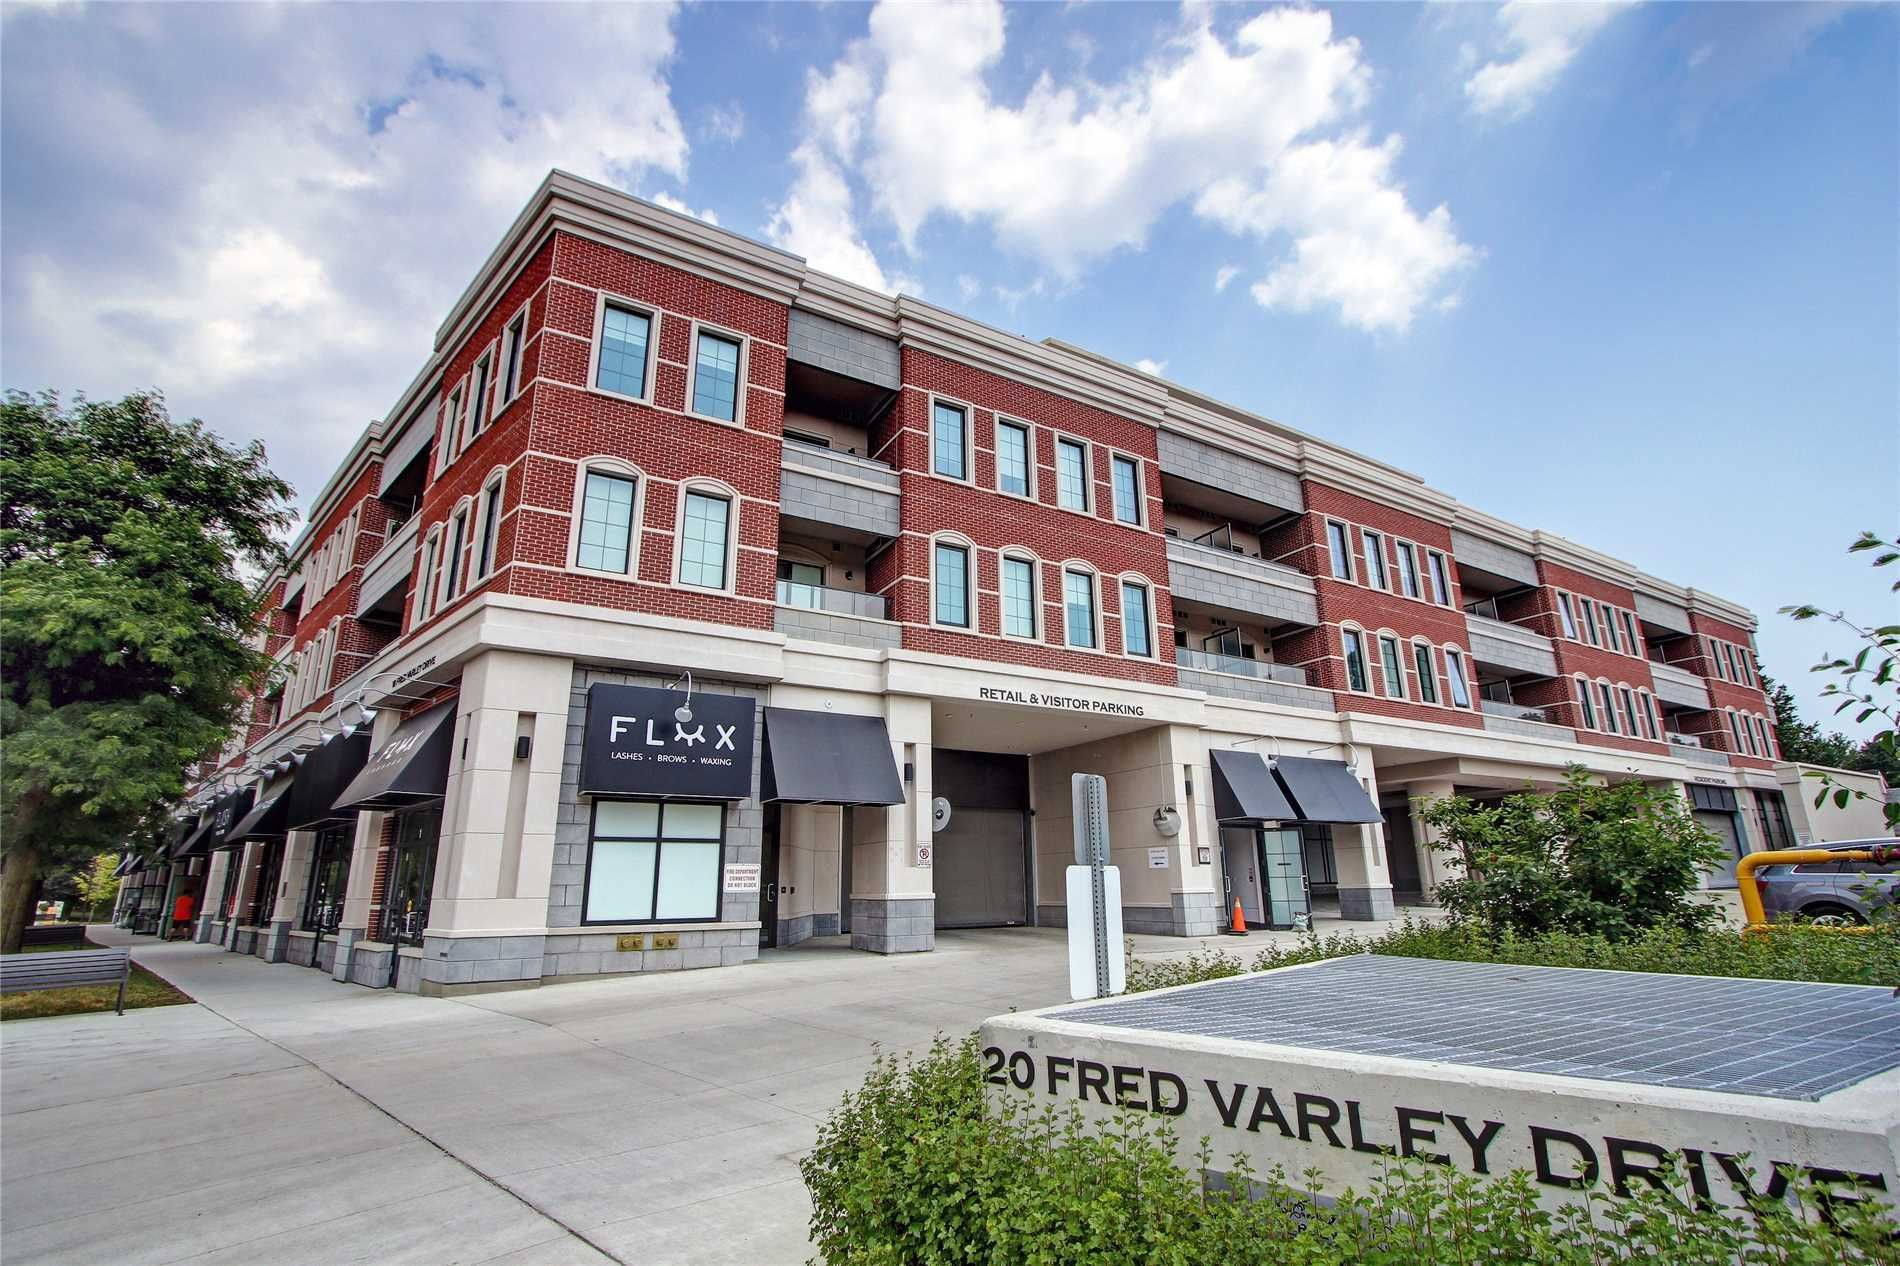 Main Photo: 213 20 Fred Varley Drive in Markham: Unionville Condo for sale : MLS®# N4532873